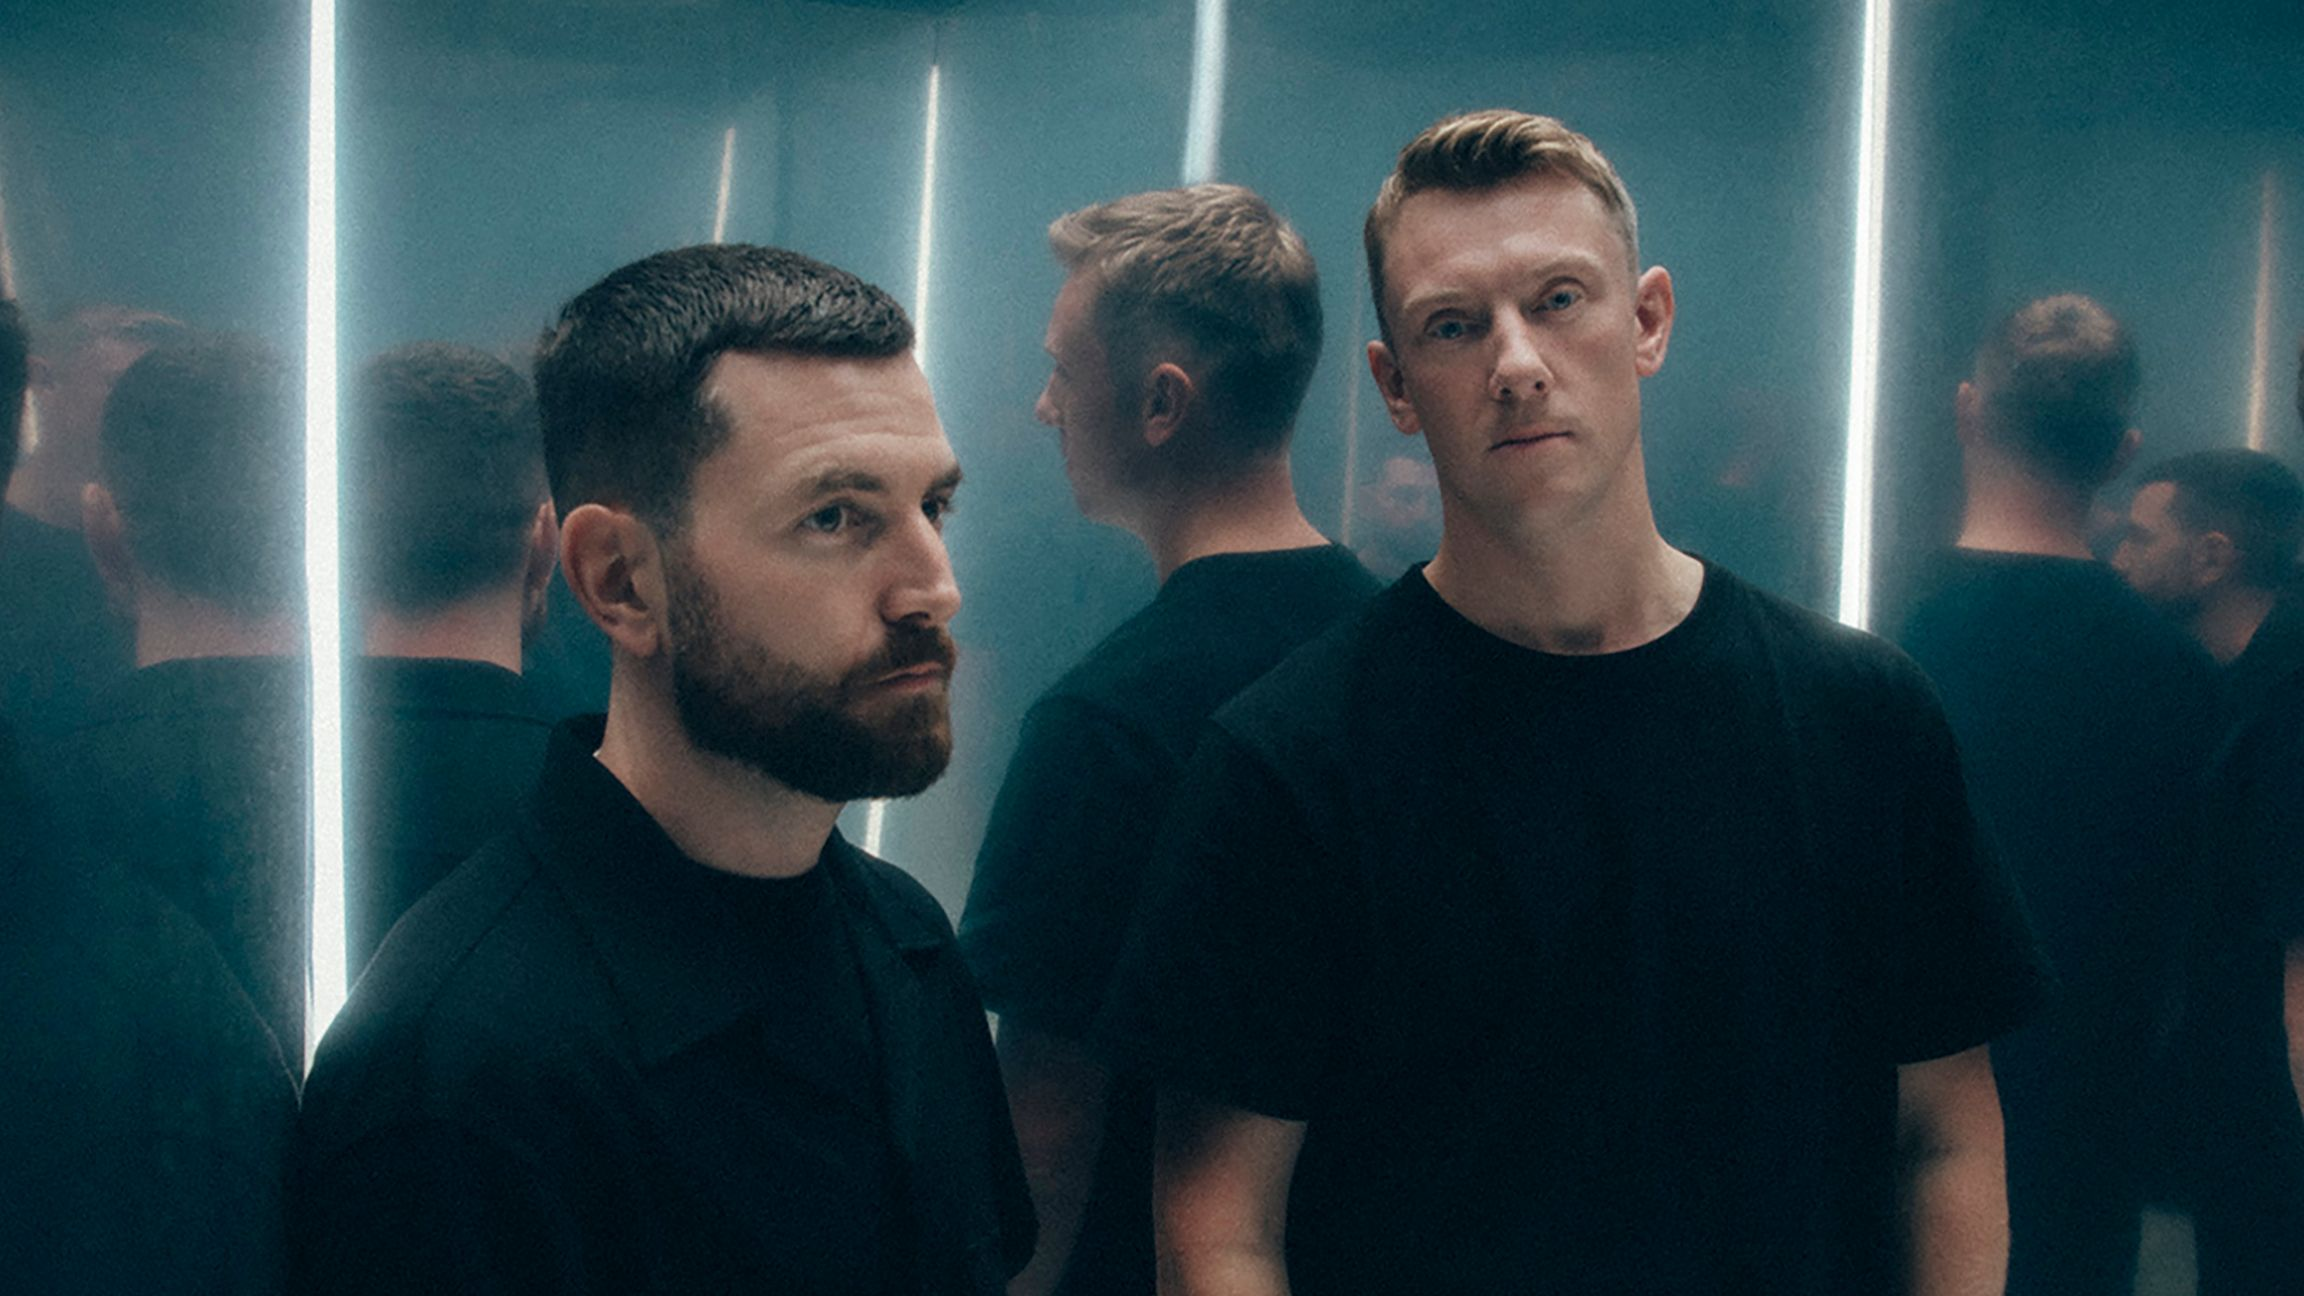 Live Preview: Bicep 2021 Tour Dates